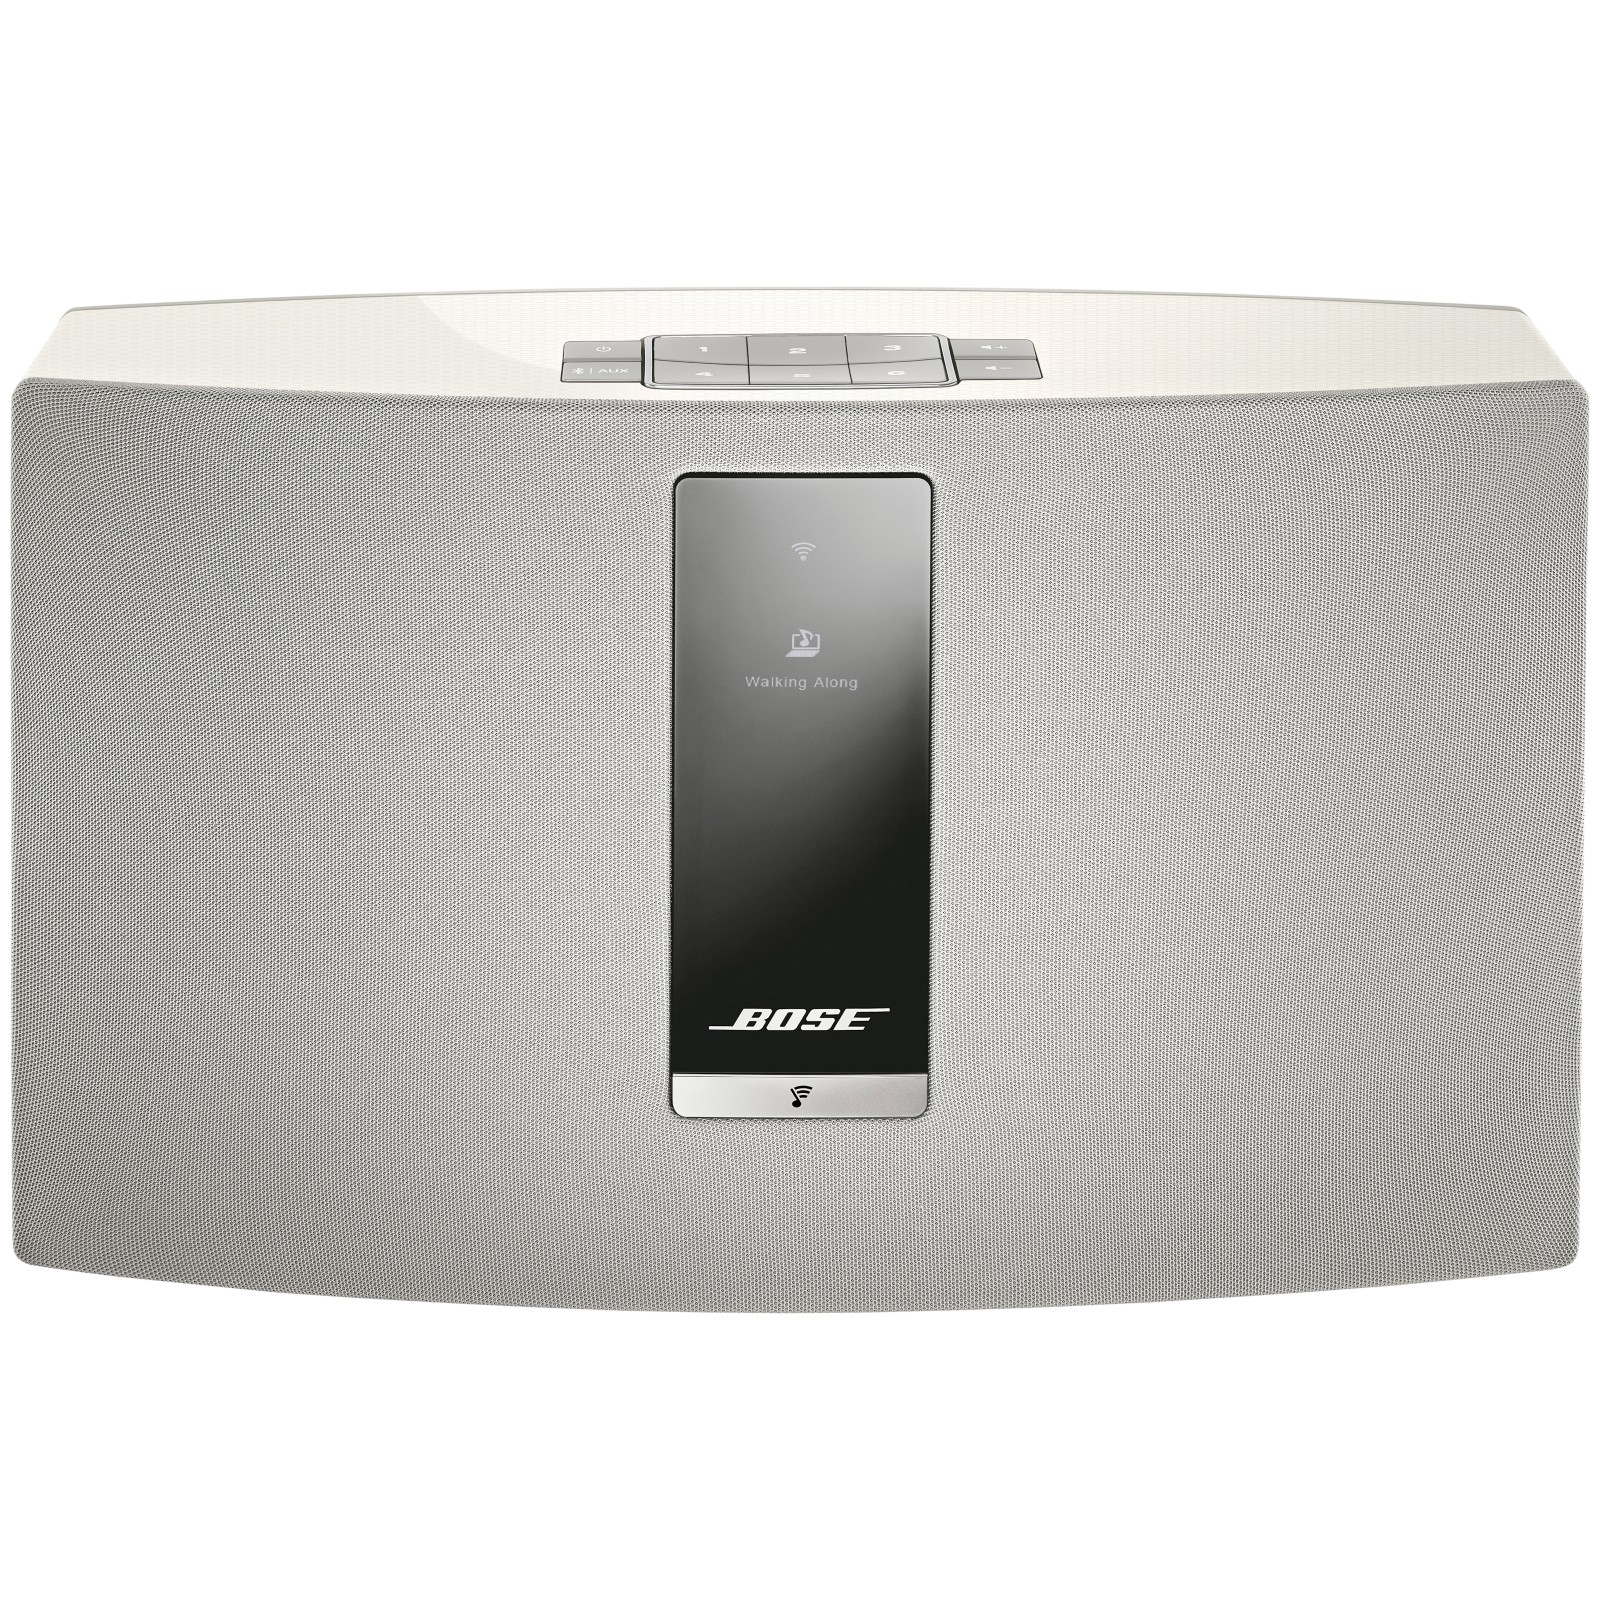 Bose soundtouch 20 review uk dating 2